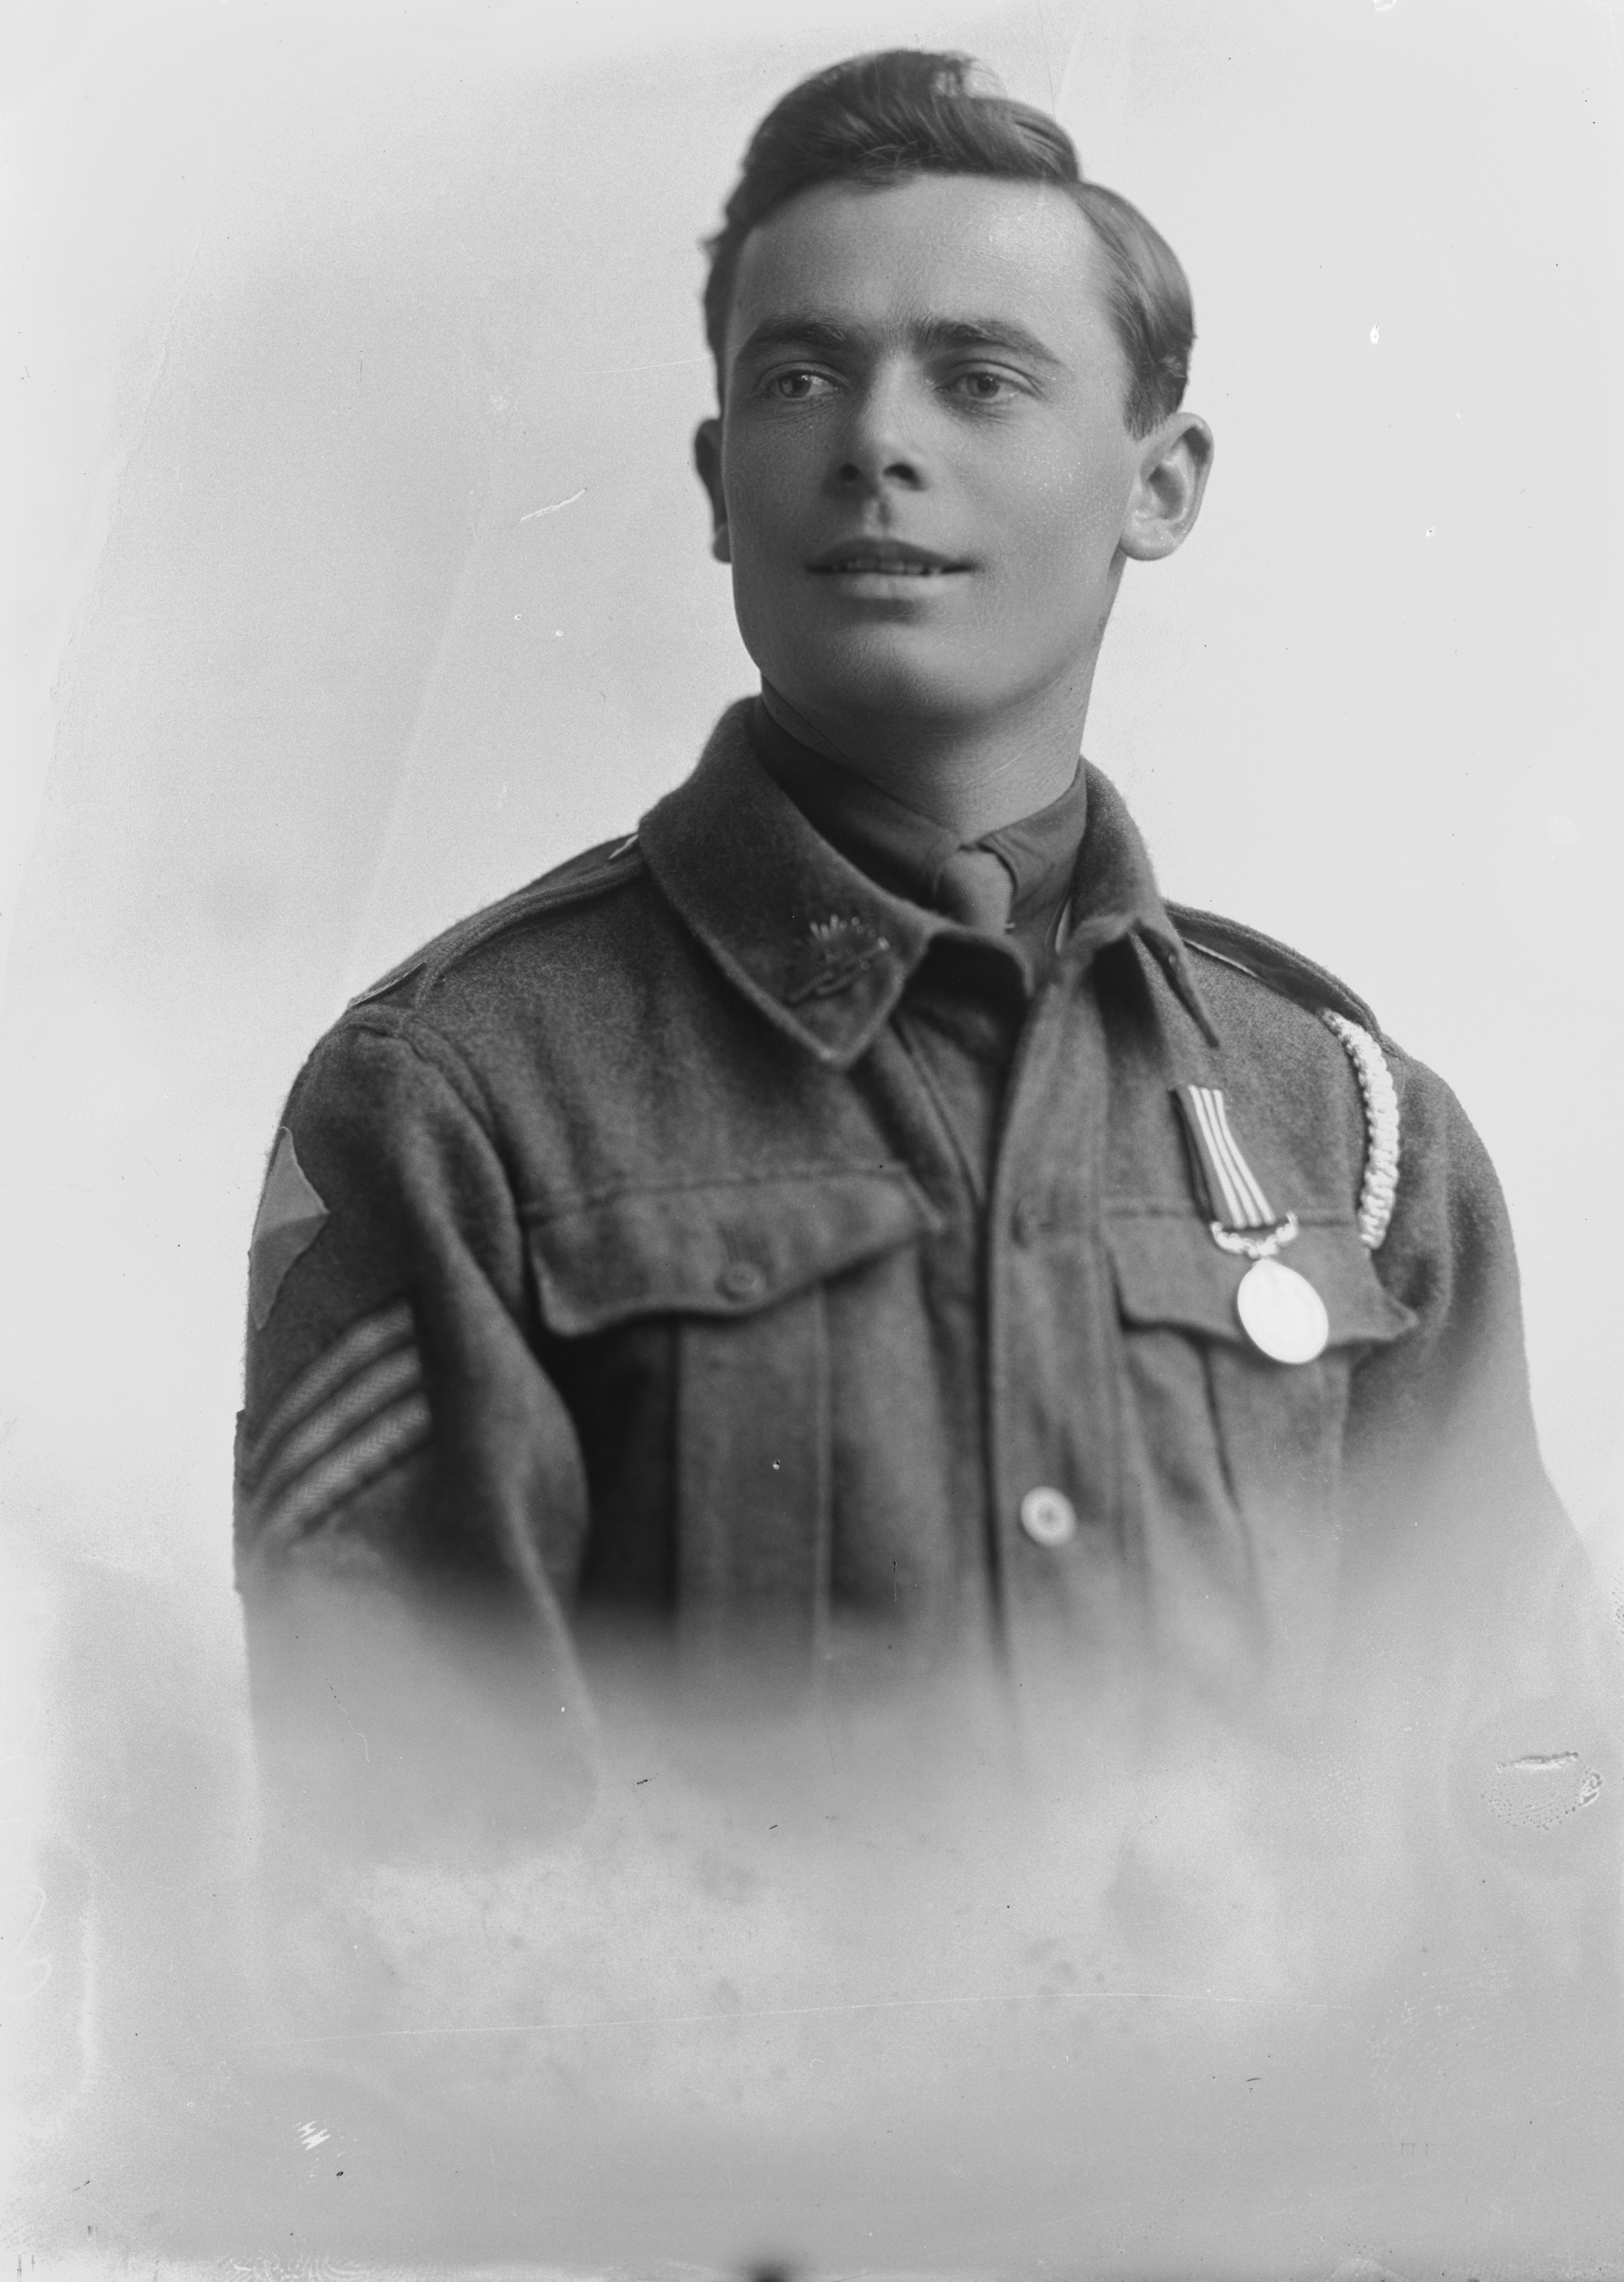 Photographed By Dease Soldier Studio 117 Barrack Street Perth W.A Image Courtesy of State Library of Western Australia 108216PD